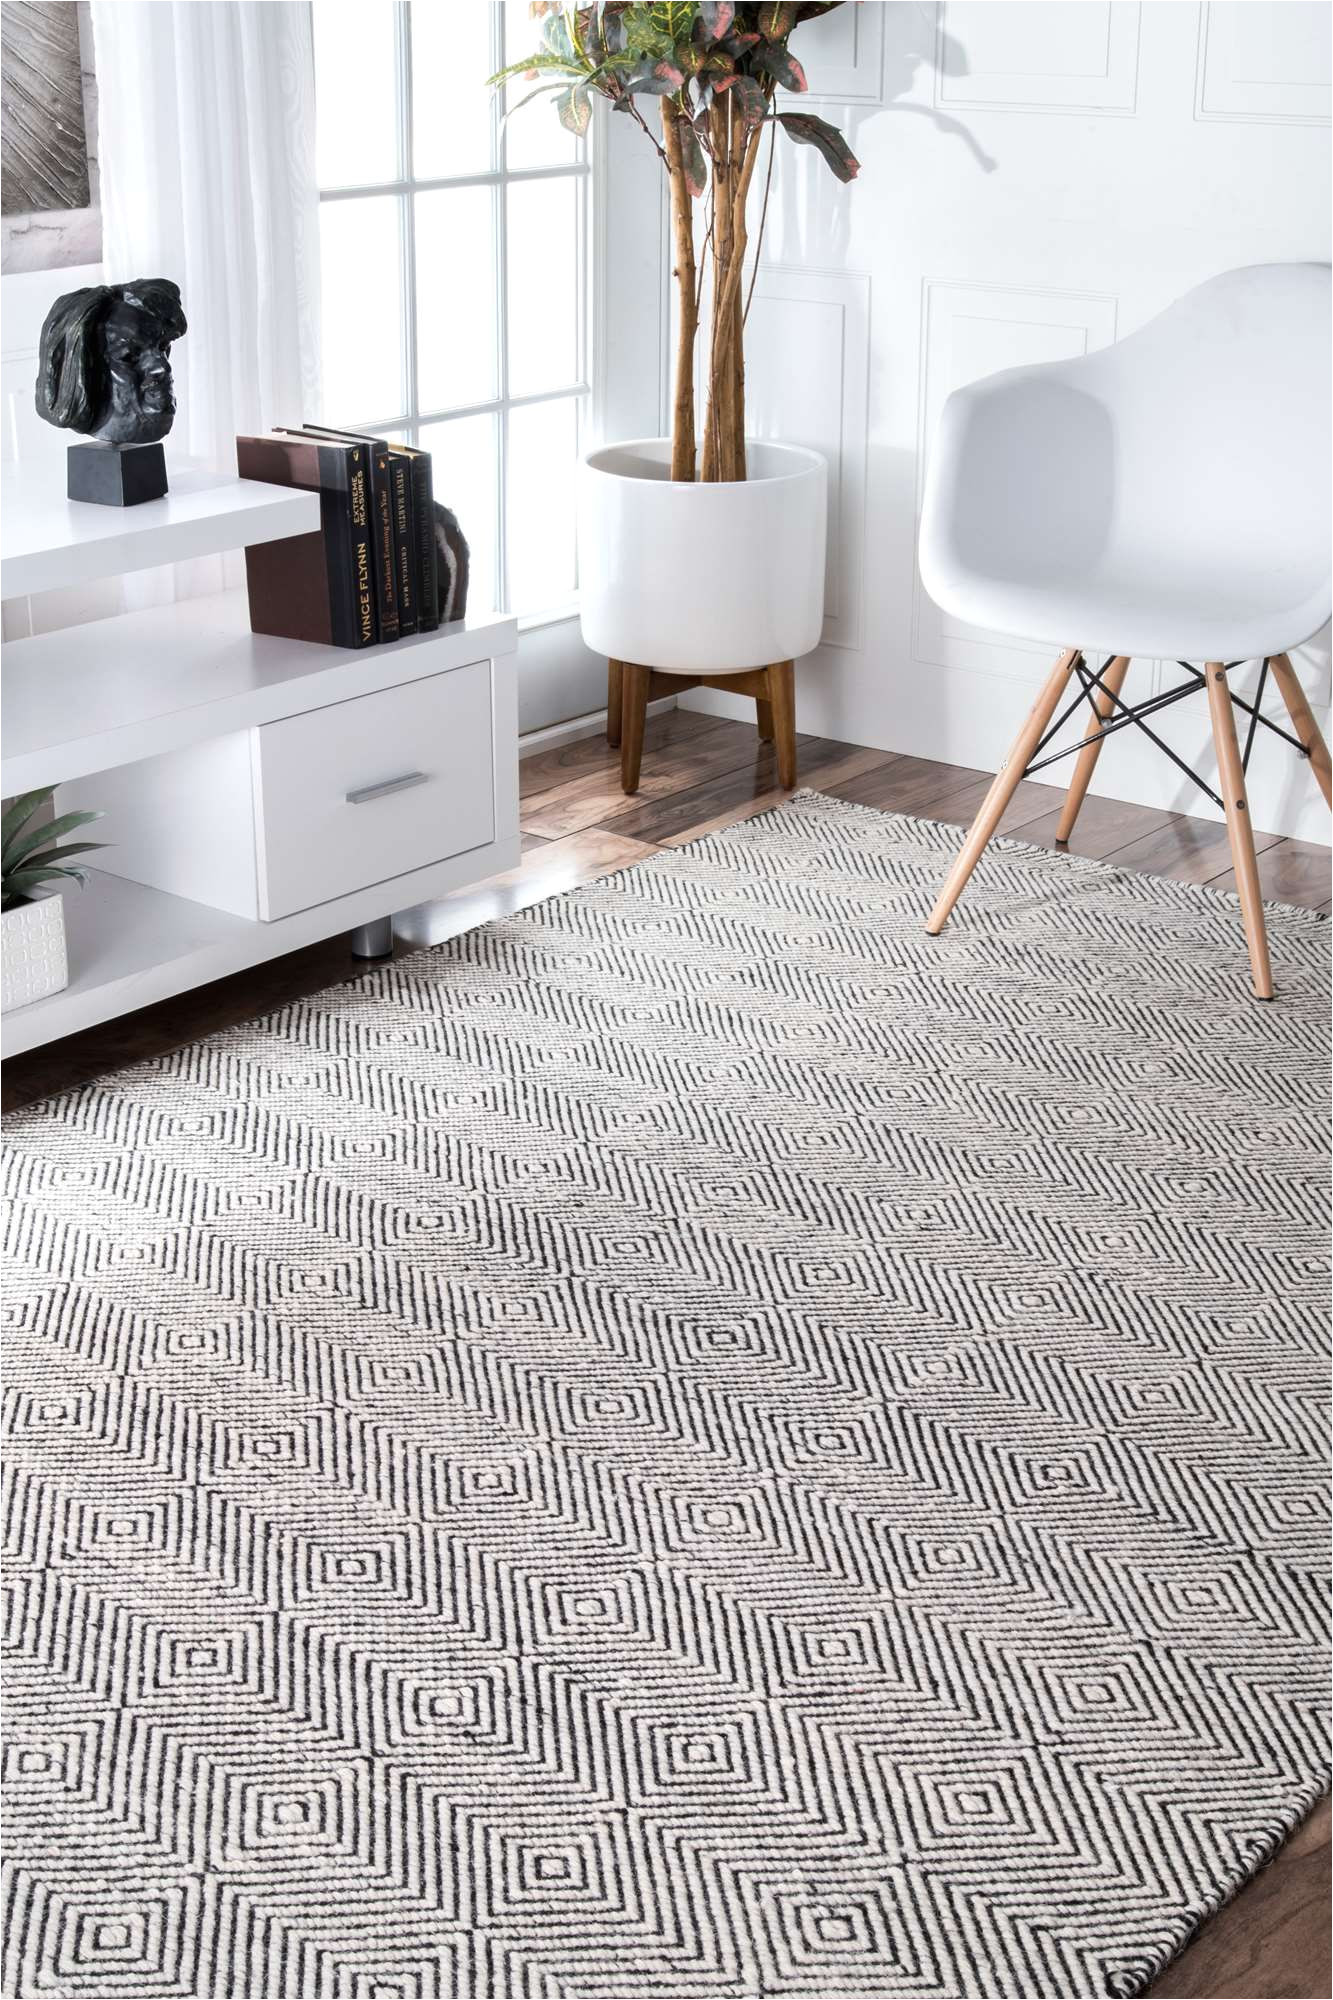 create an urban and chic look with this contemporary hand woven paddle rug that spells quality as well as durability available in subtle colors and